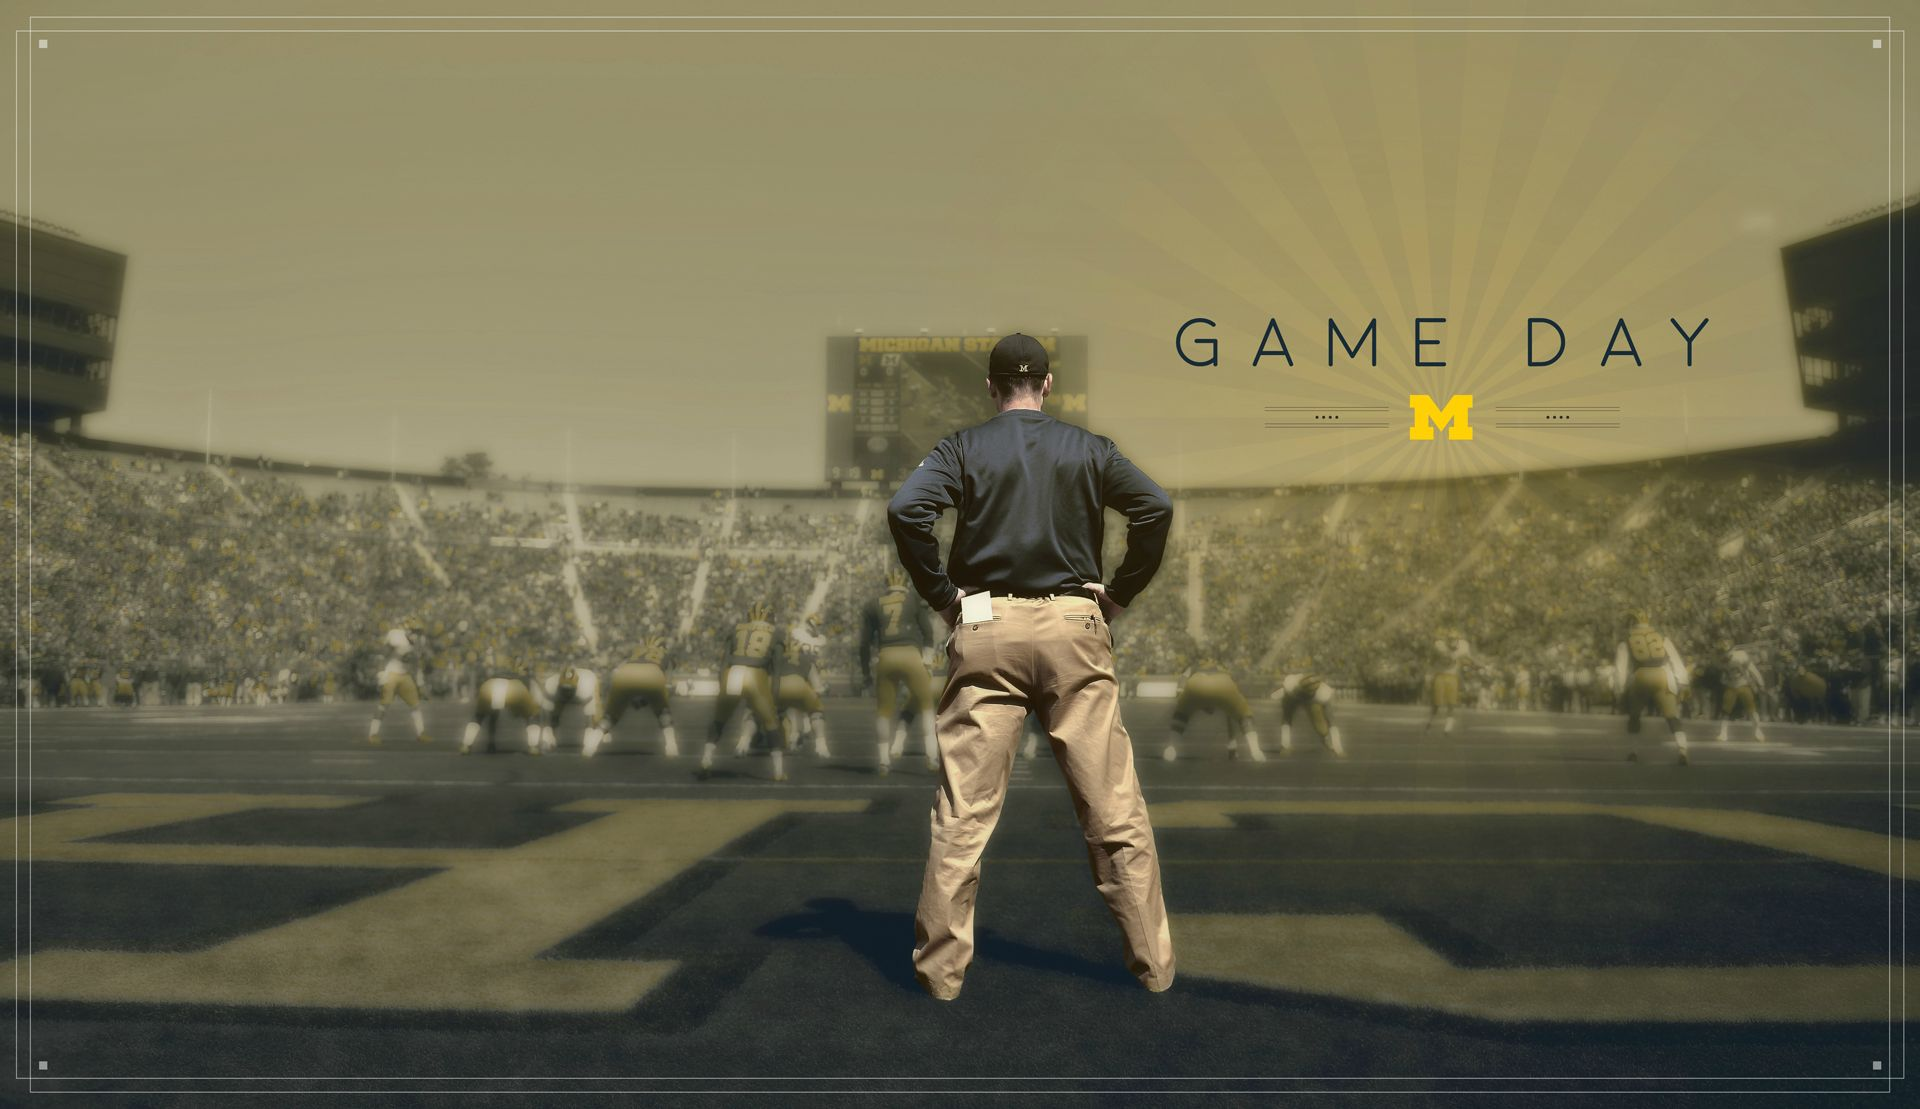 MGoWallpaper   Game Day mgoblog 1920x1109